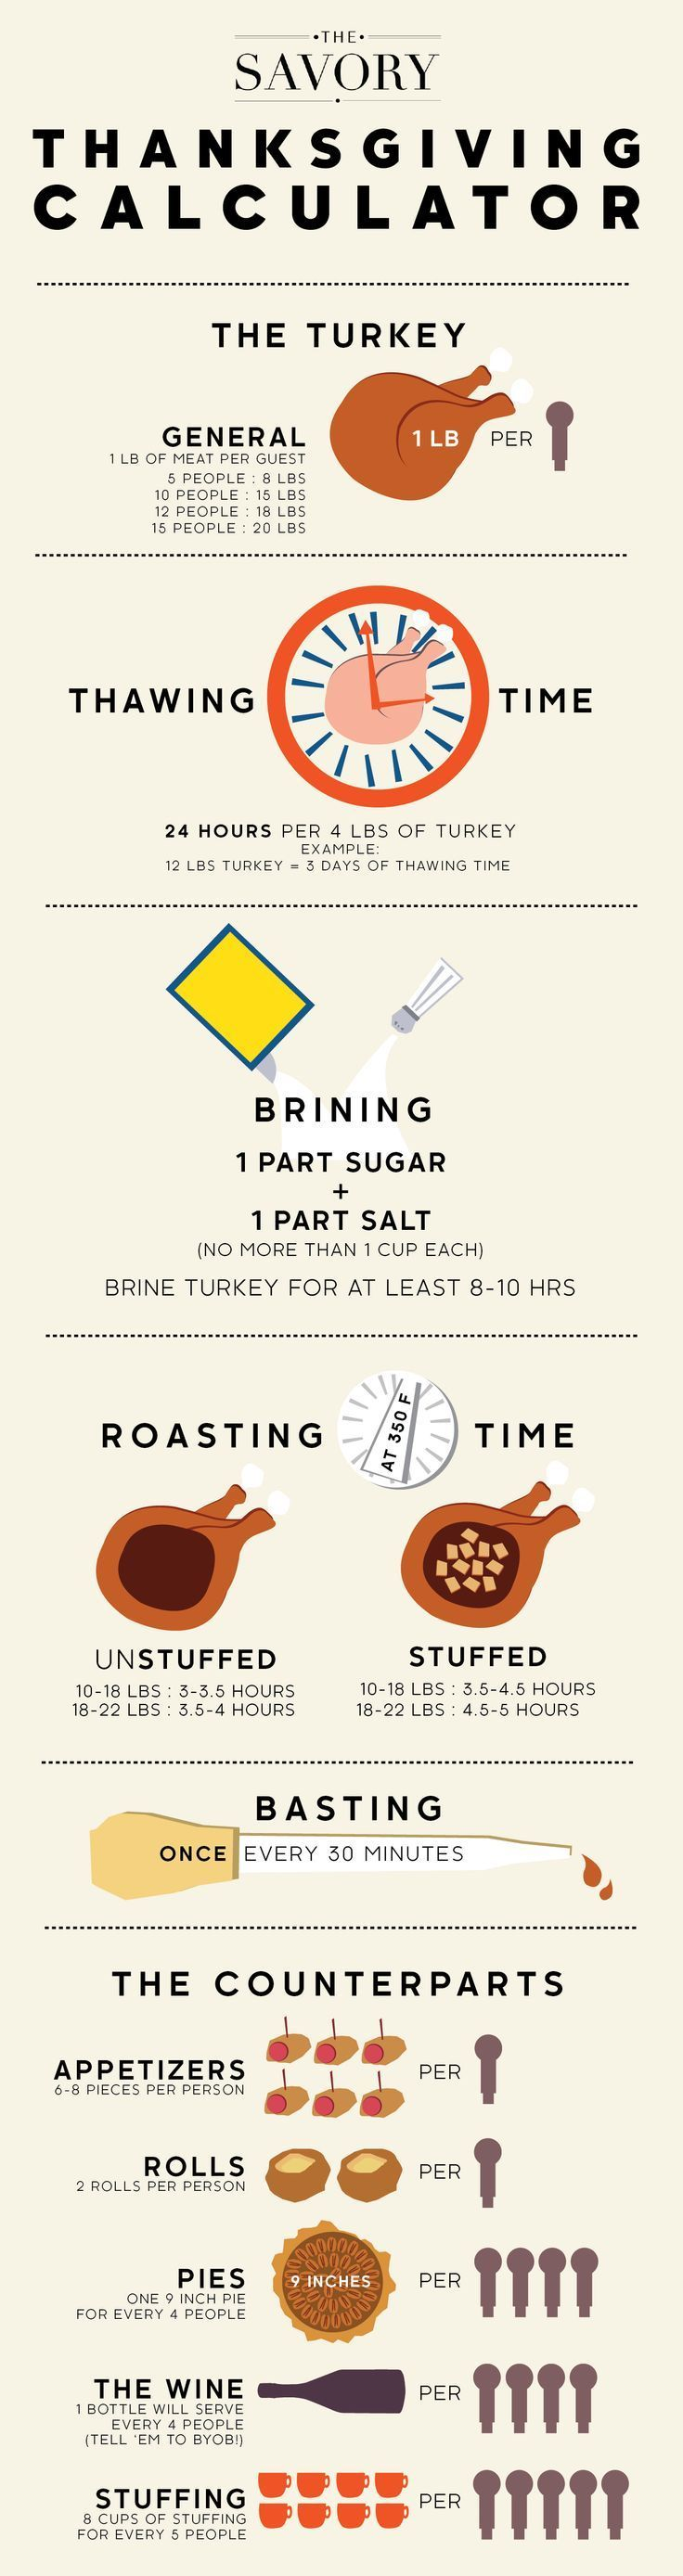 Thanksgiving is around the corner! Here's the ultimate guide to planning and entertaining #thanksgiving #dinner #lunch